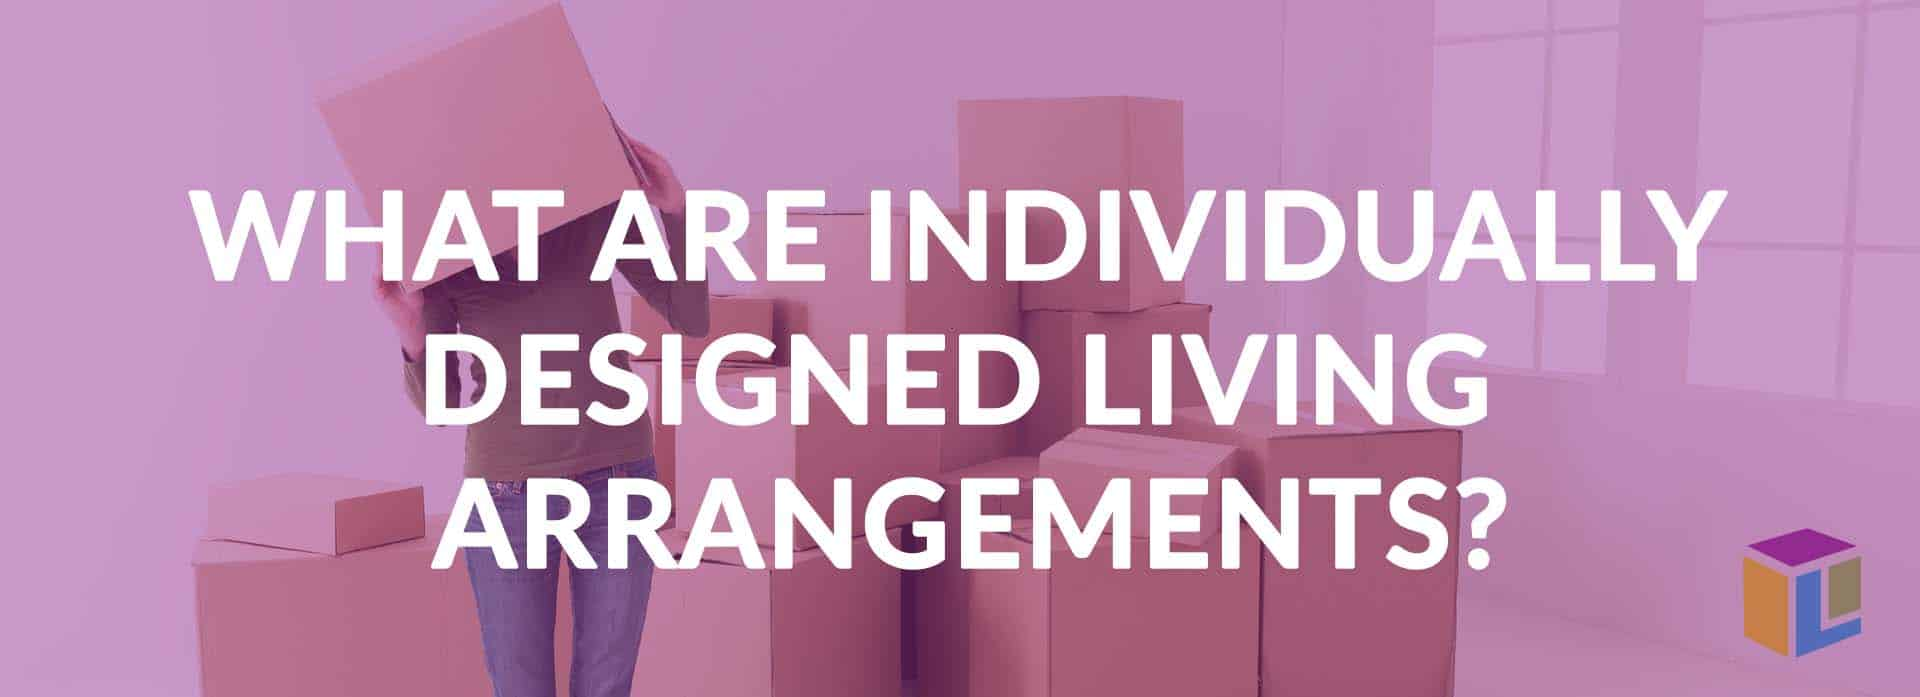 What Are Individually Designed Living Arrangements?